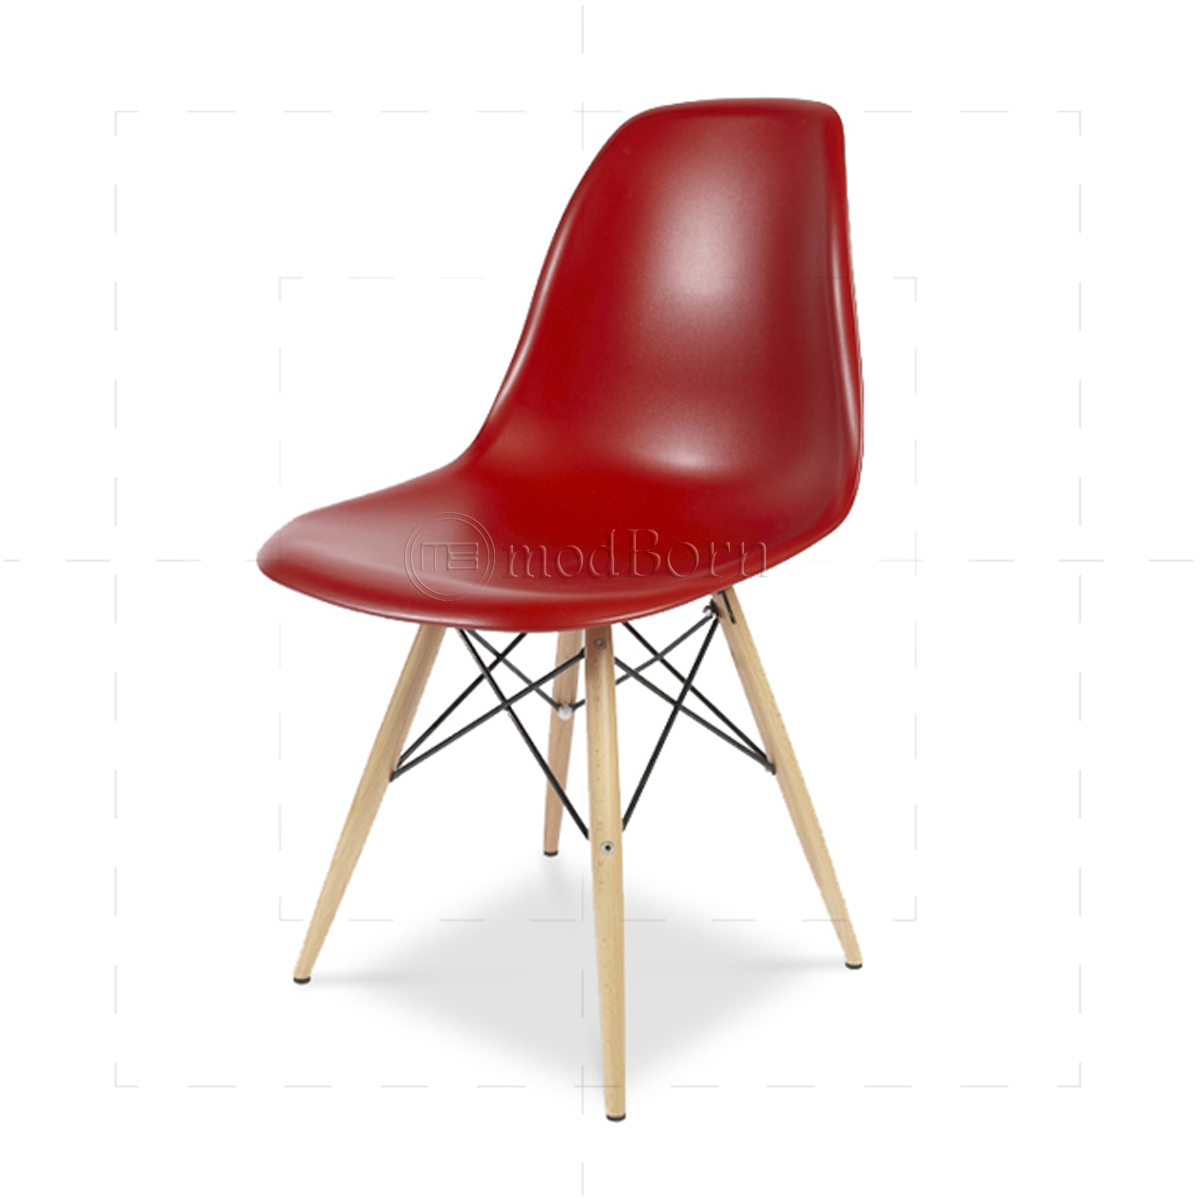 eames style dining dsw chair red replica. Black Bedroom Furniture Sets. Home Design Ideas